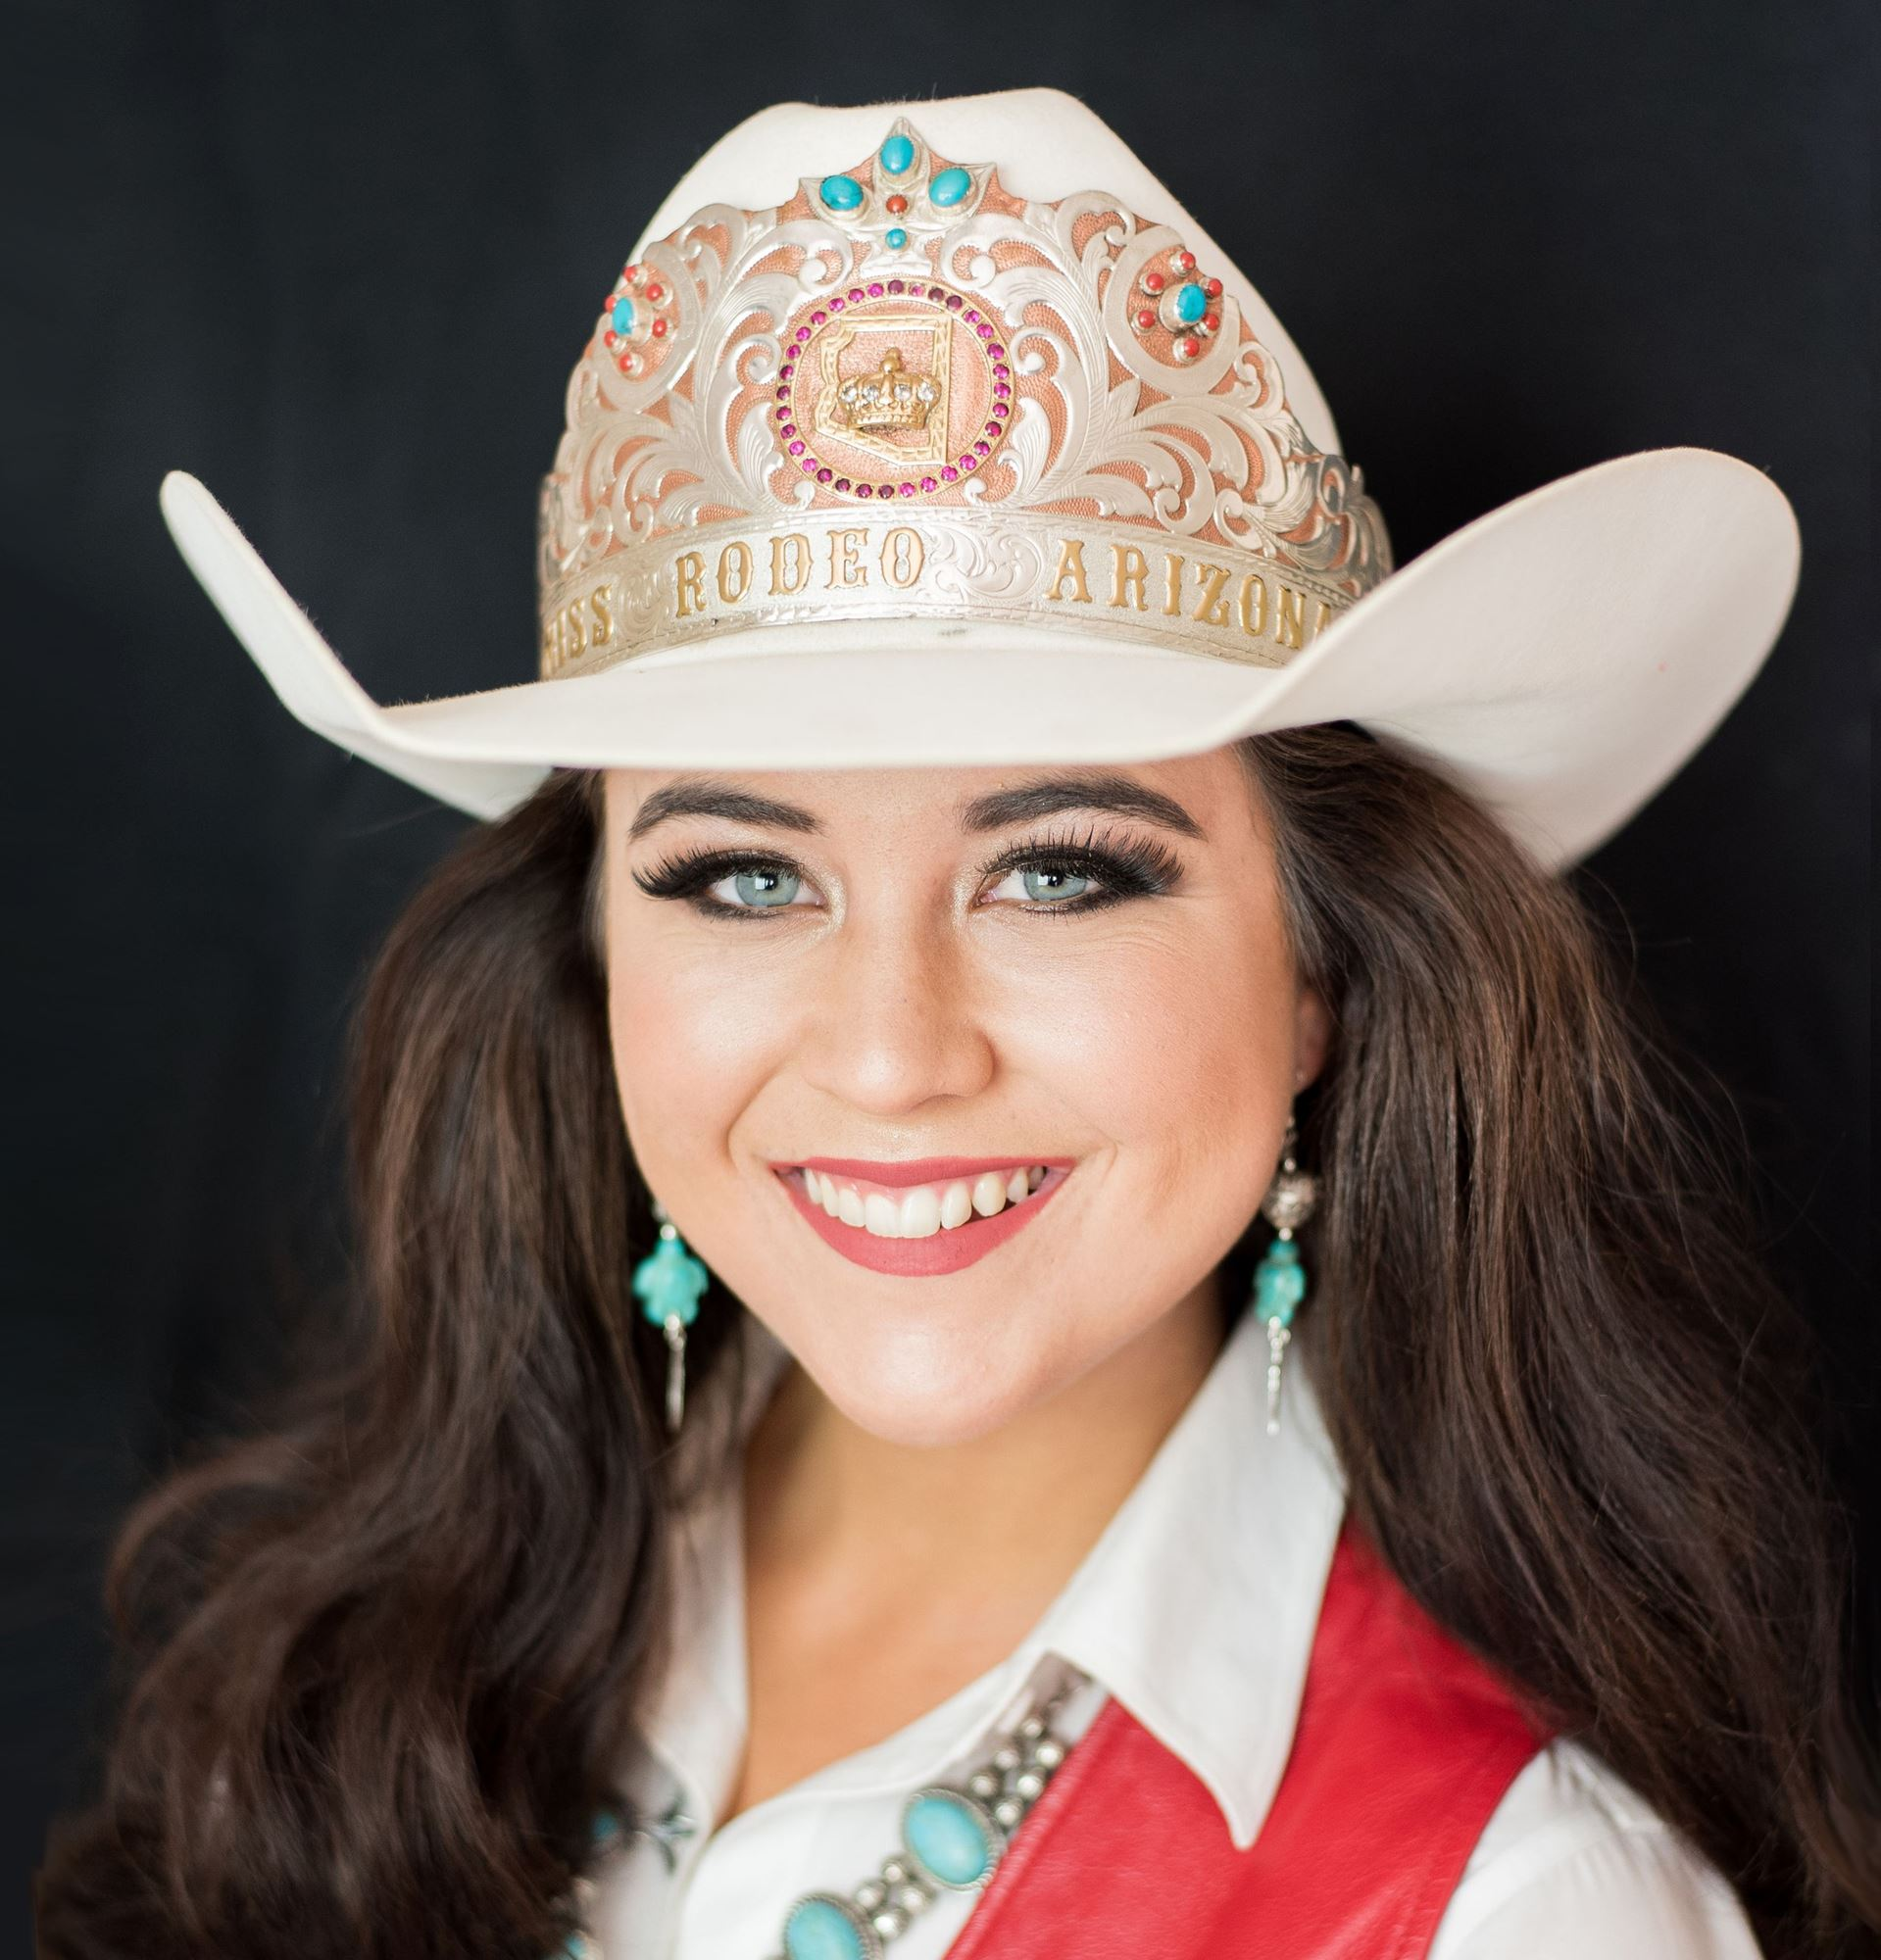 Miss Rodeo America 2020 Contestants